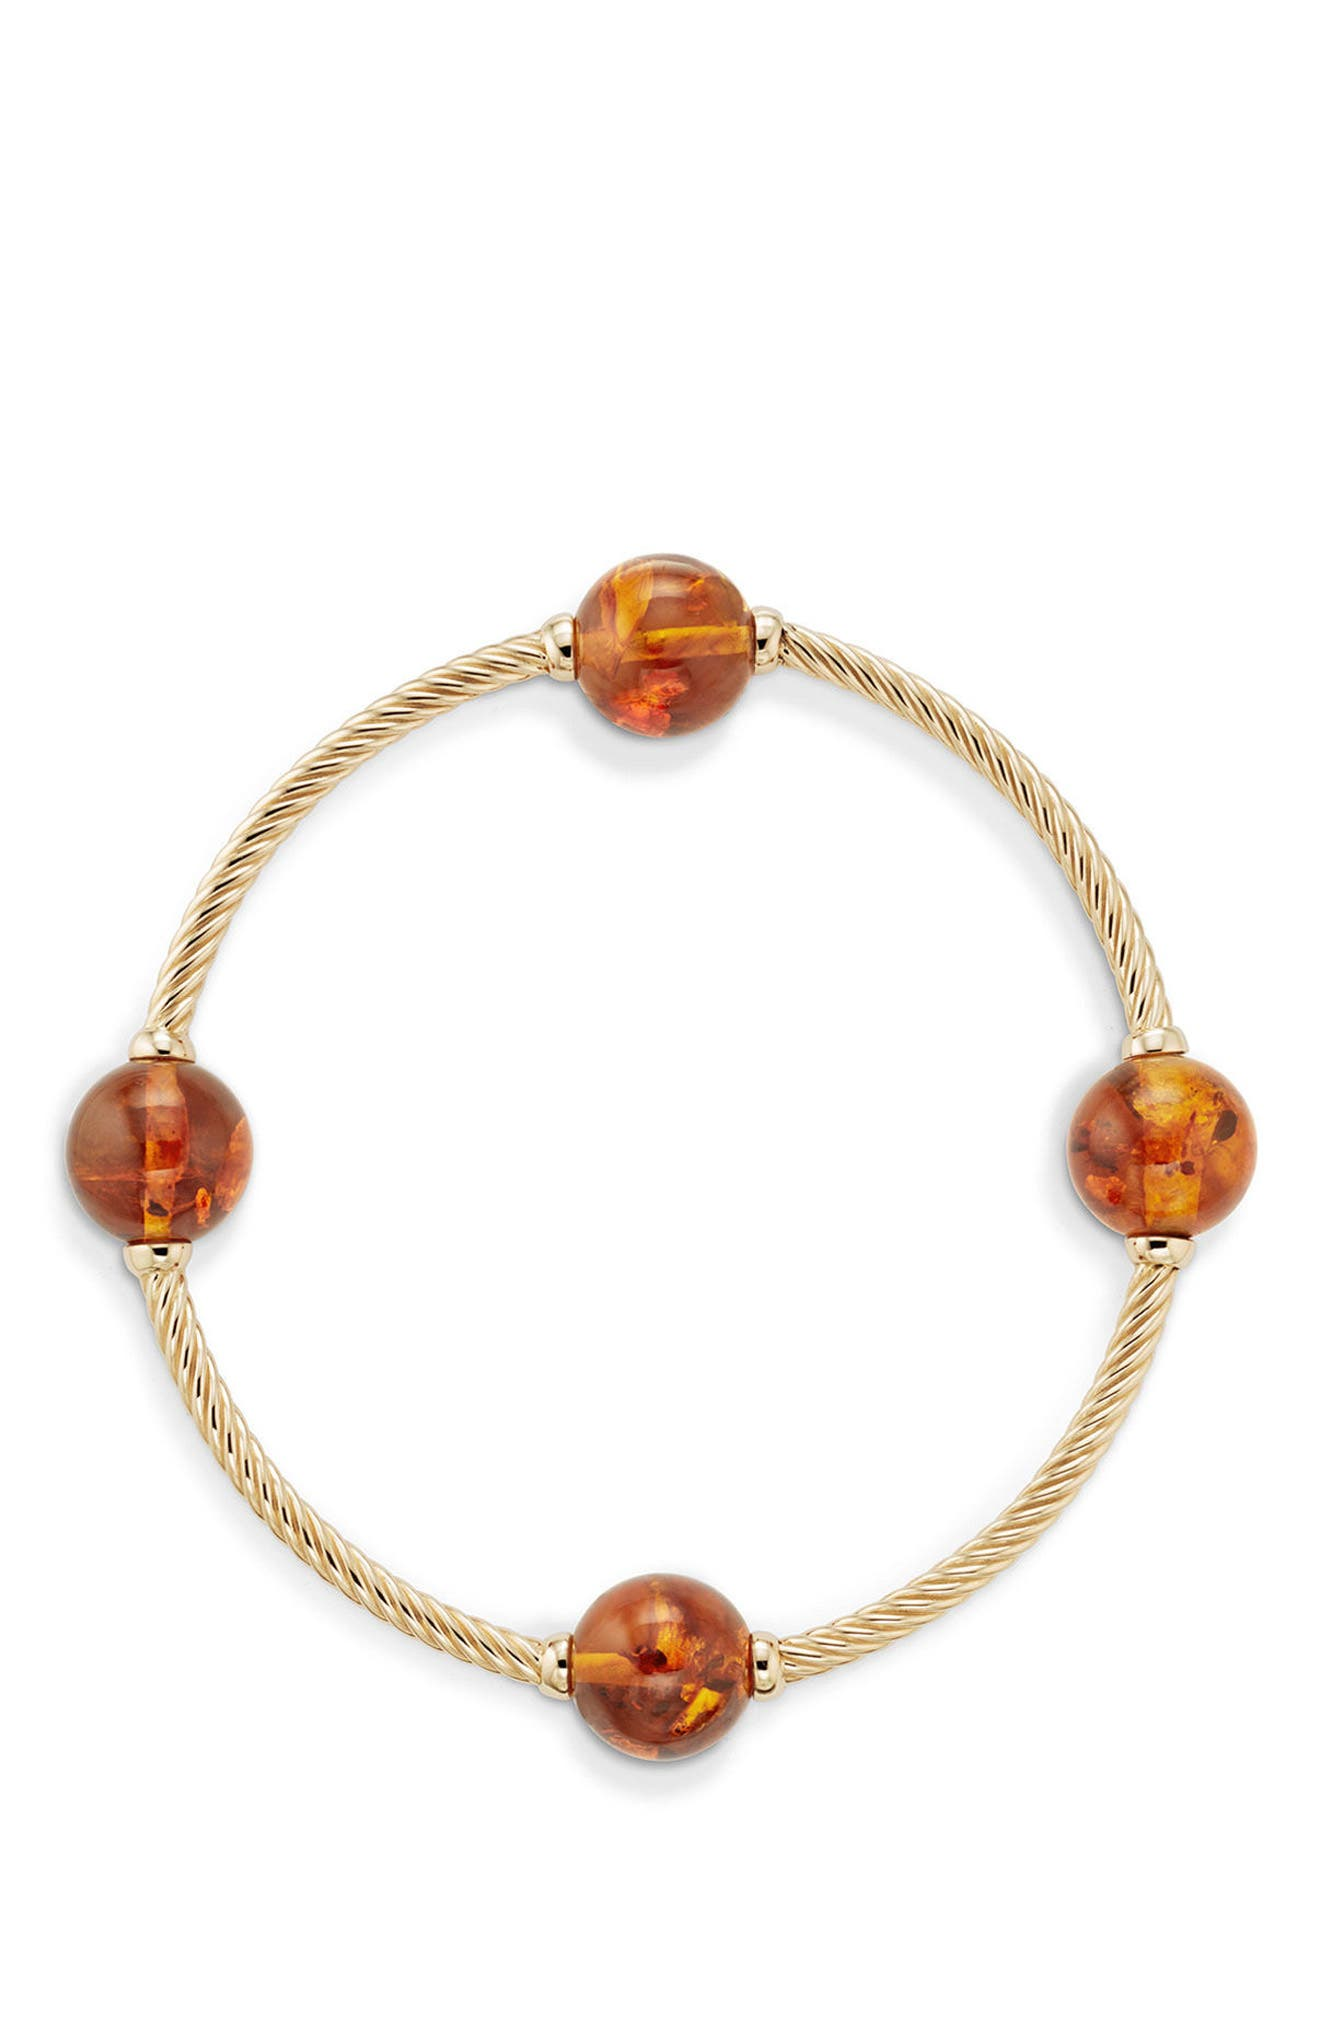 Mustique Four Station Bangle Bracelet in 18K Gold,                             Alternate thumbnail 2, color,                             YELLOW GOLD/ AMBER